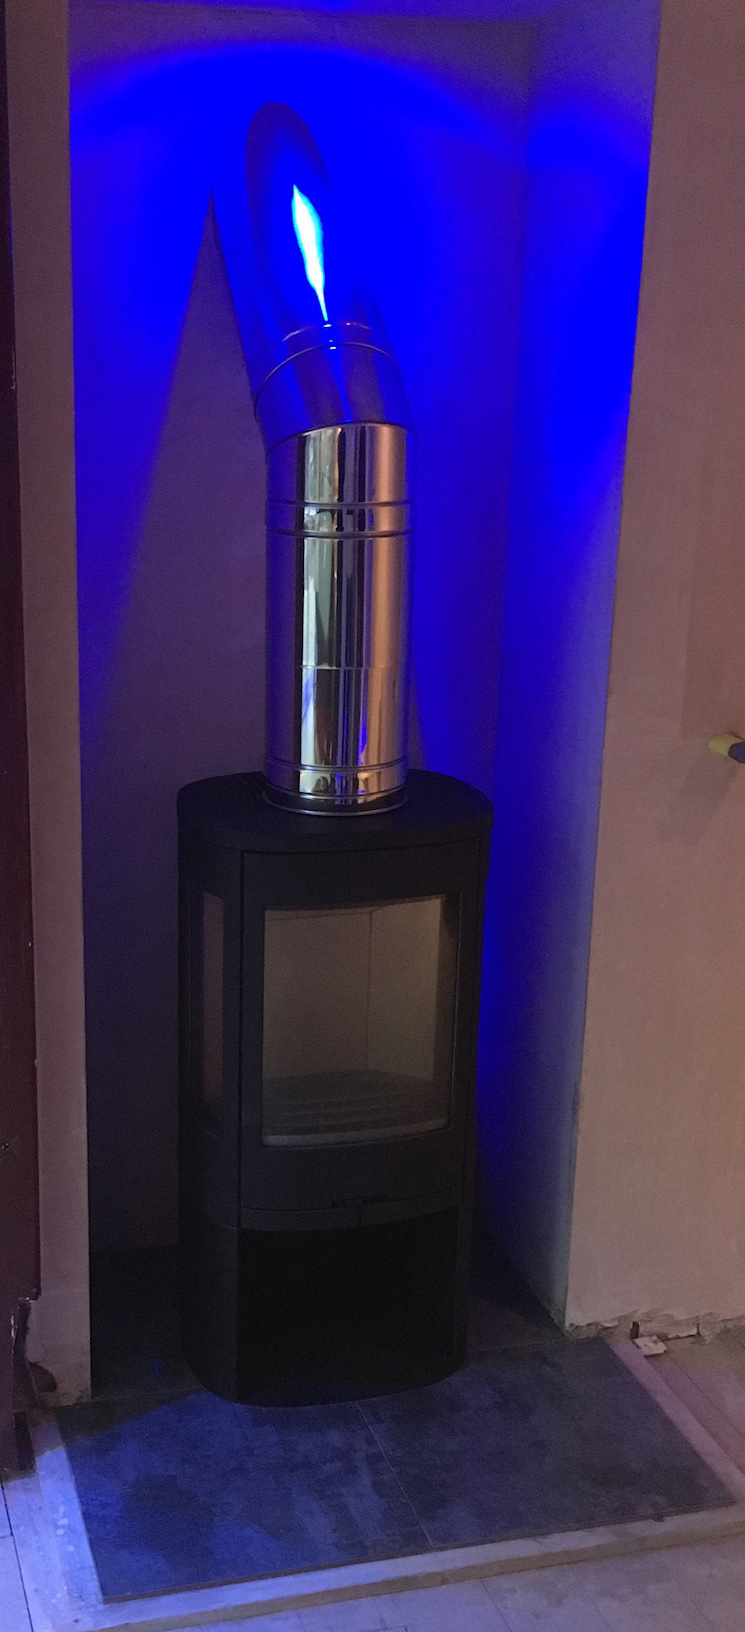 Stove with blue LED down-lighting